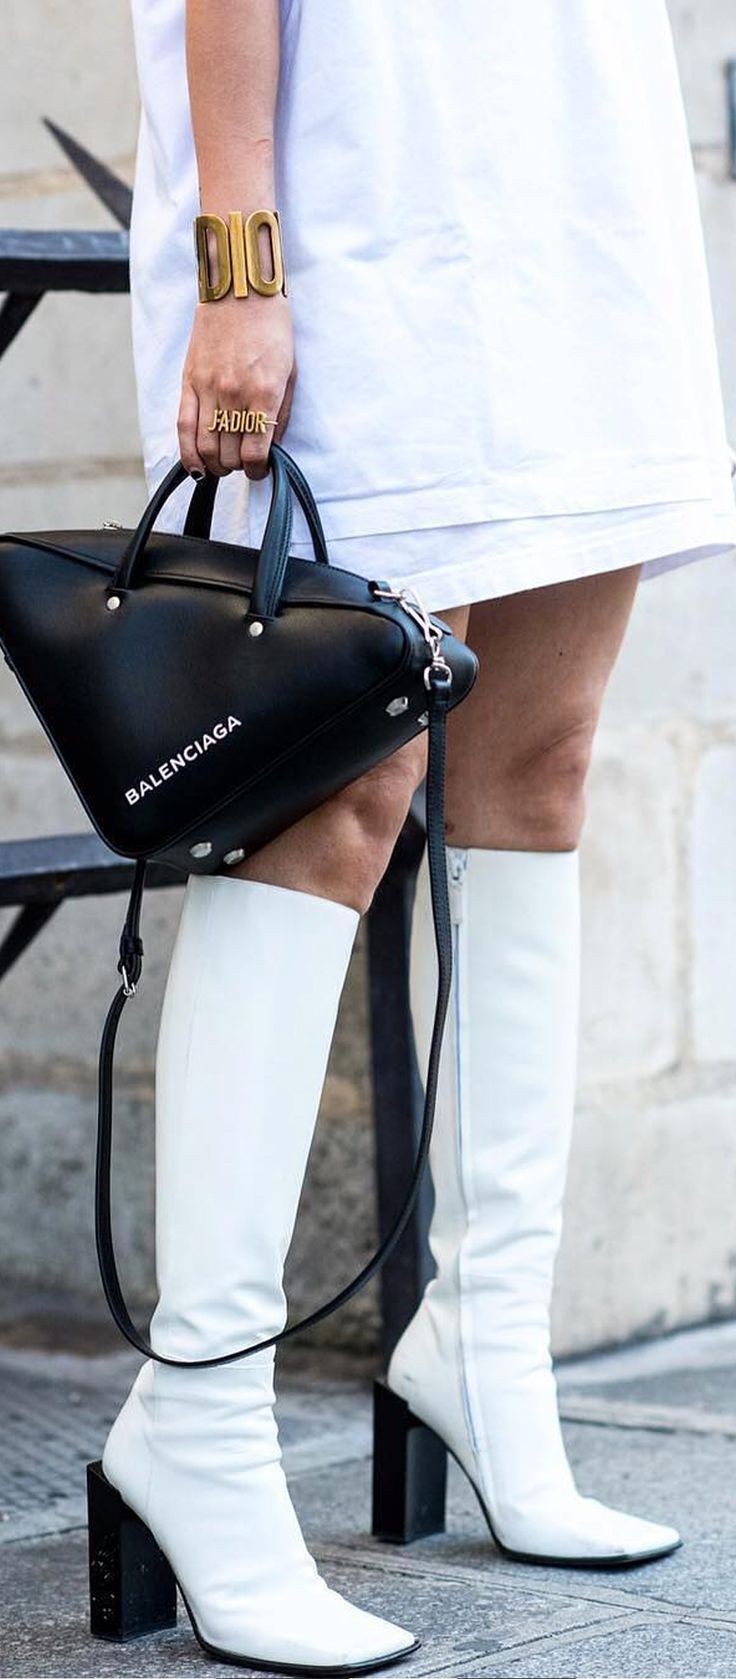 The best bags of the season come in the most unexpected shapes. Find The One Balenciaga on Farfetch now.